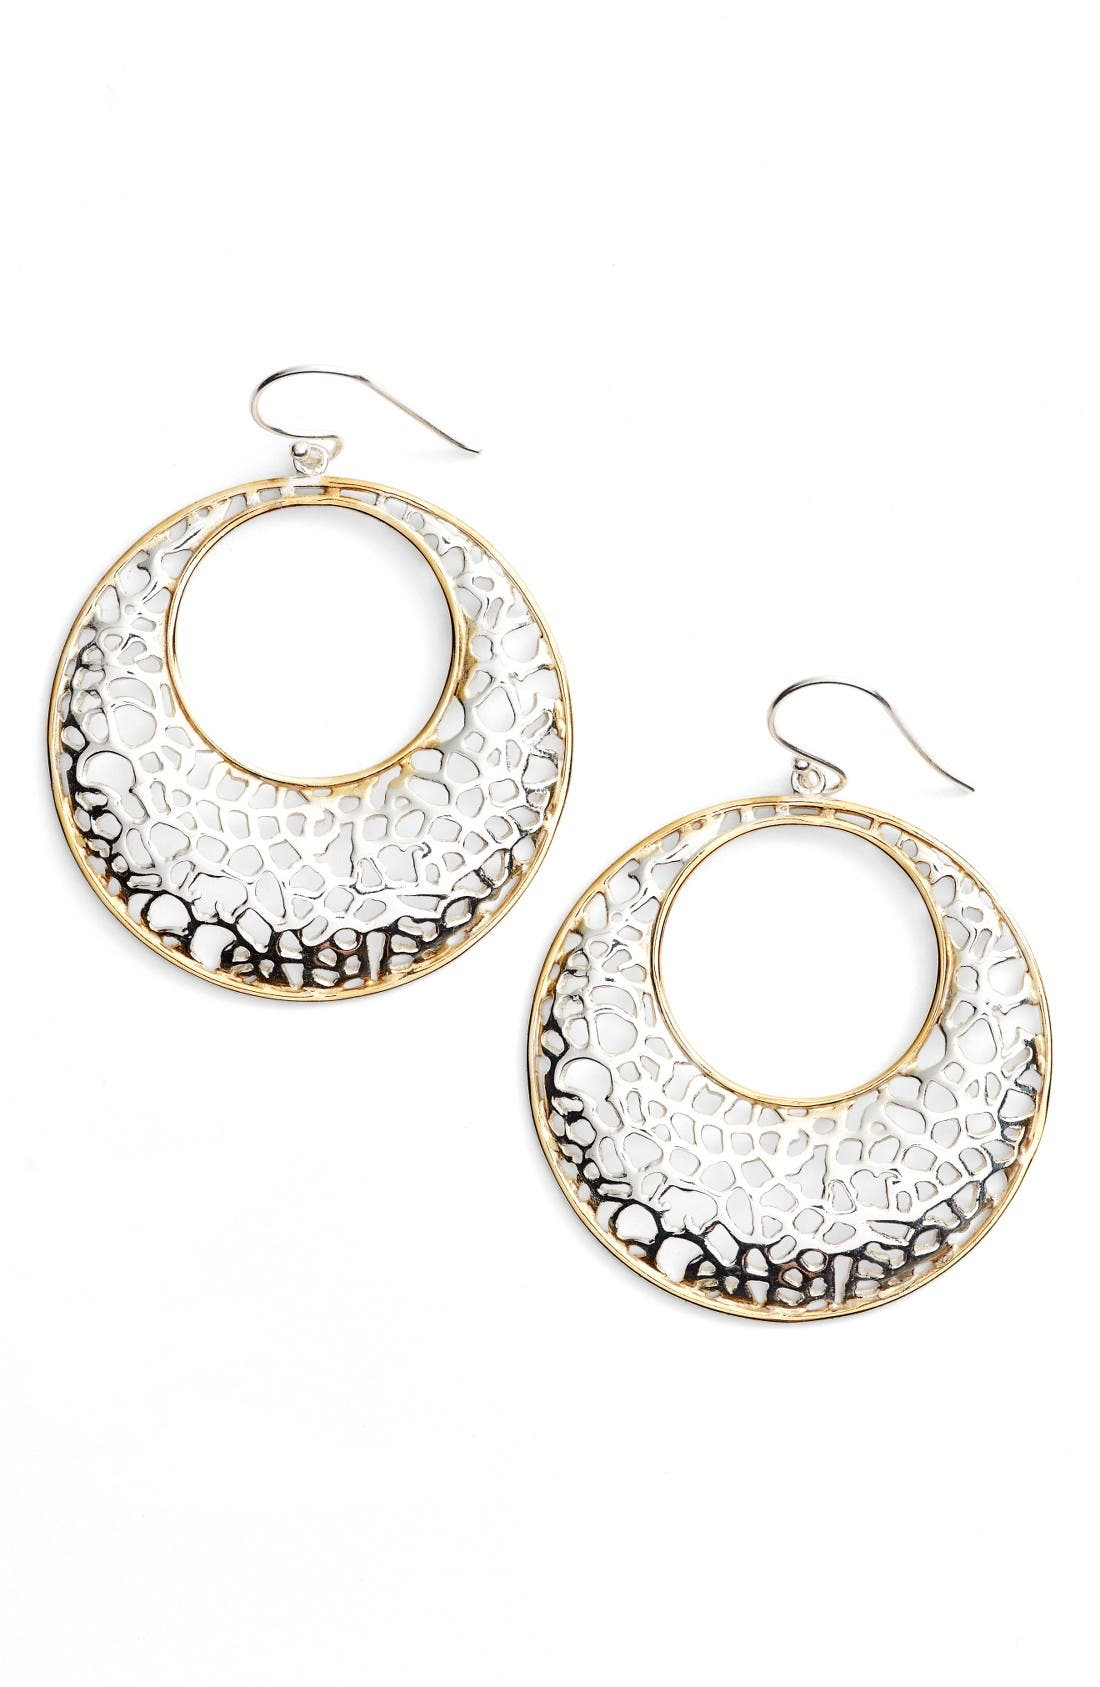 Main Image - Argento Vivo Two Tone Circle Lace Earrings